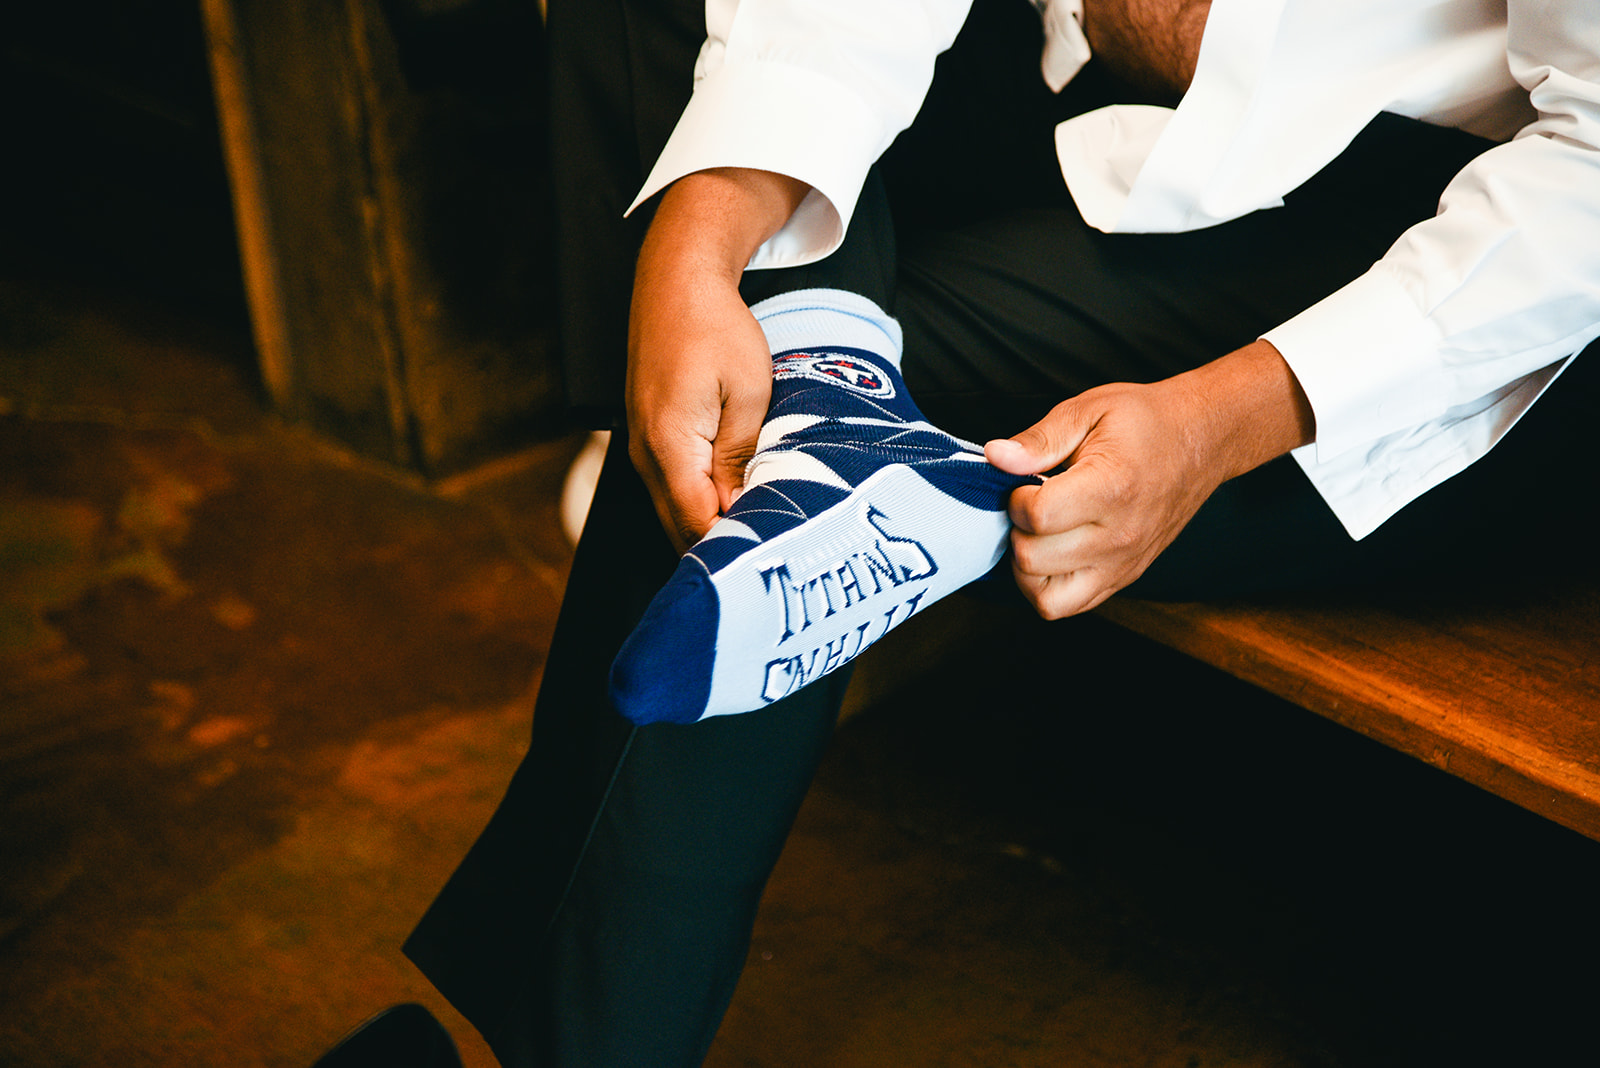 Grooms socks: Elegant Cason Cove Wedding featured on Nashville Bride Guide